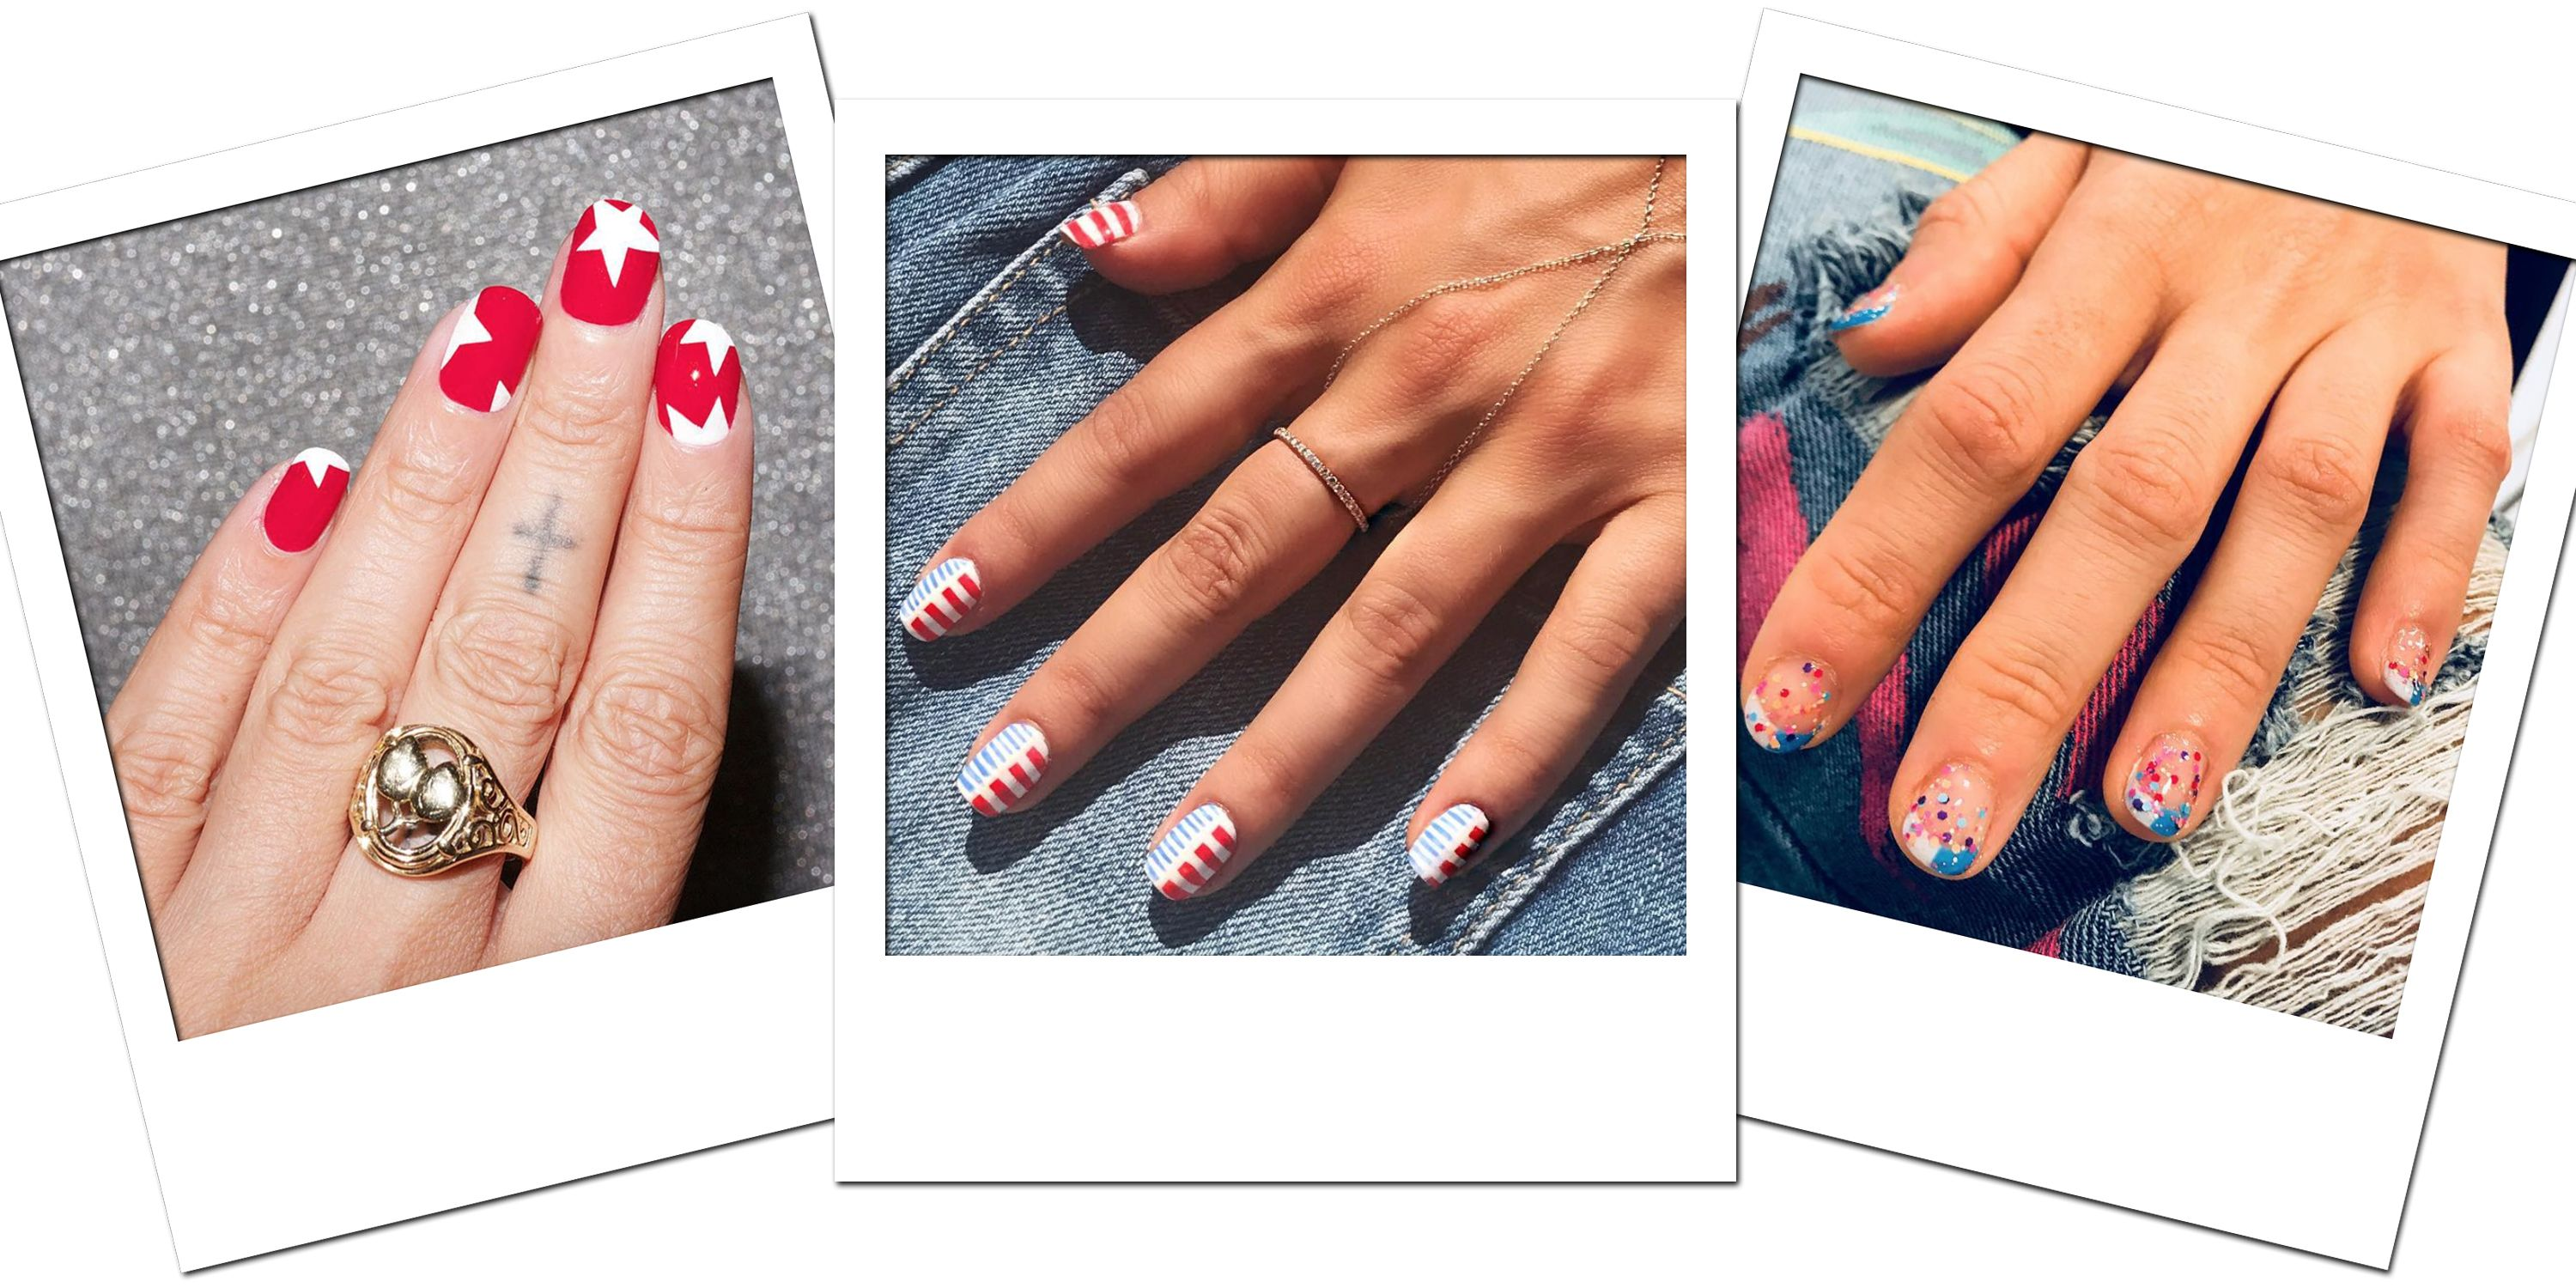 4th of July Nail Art Ideas - Chic Designs for July Fourth Nails